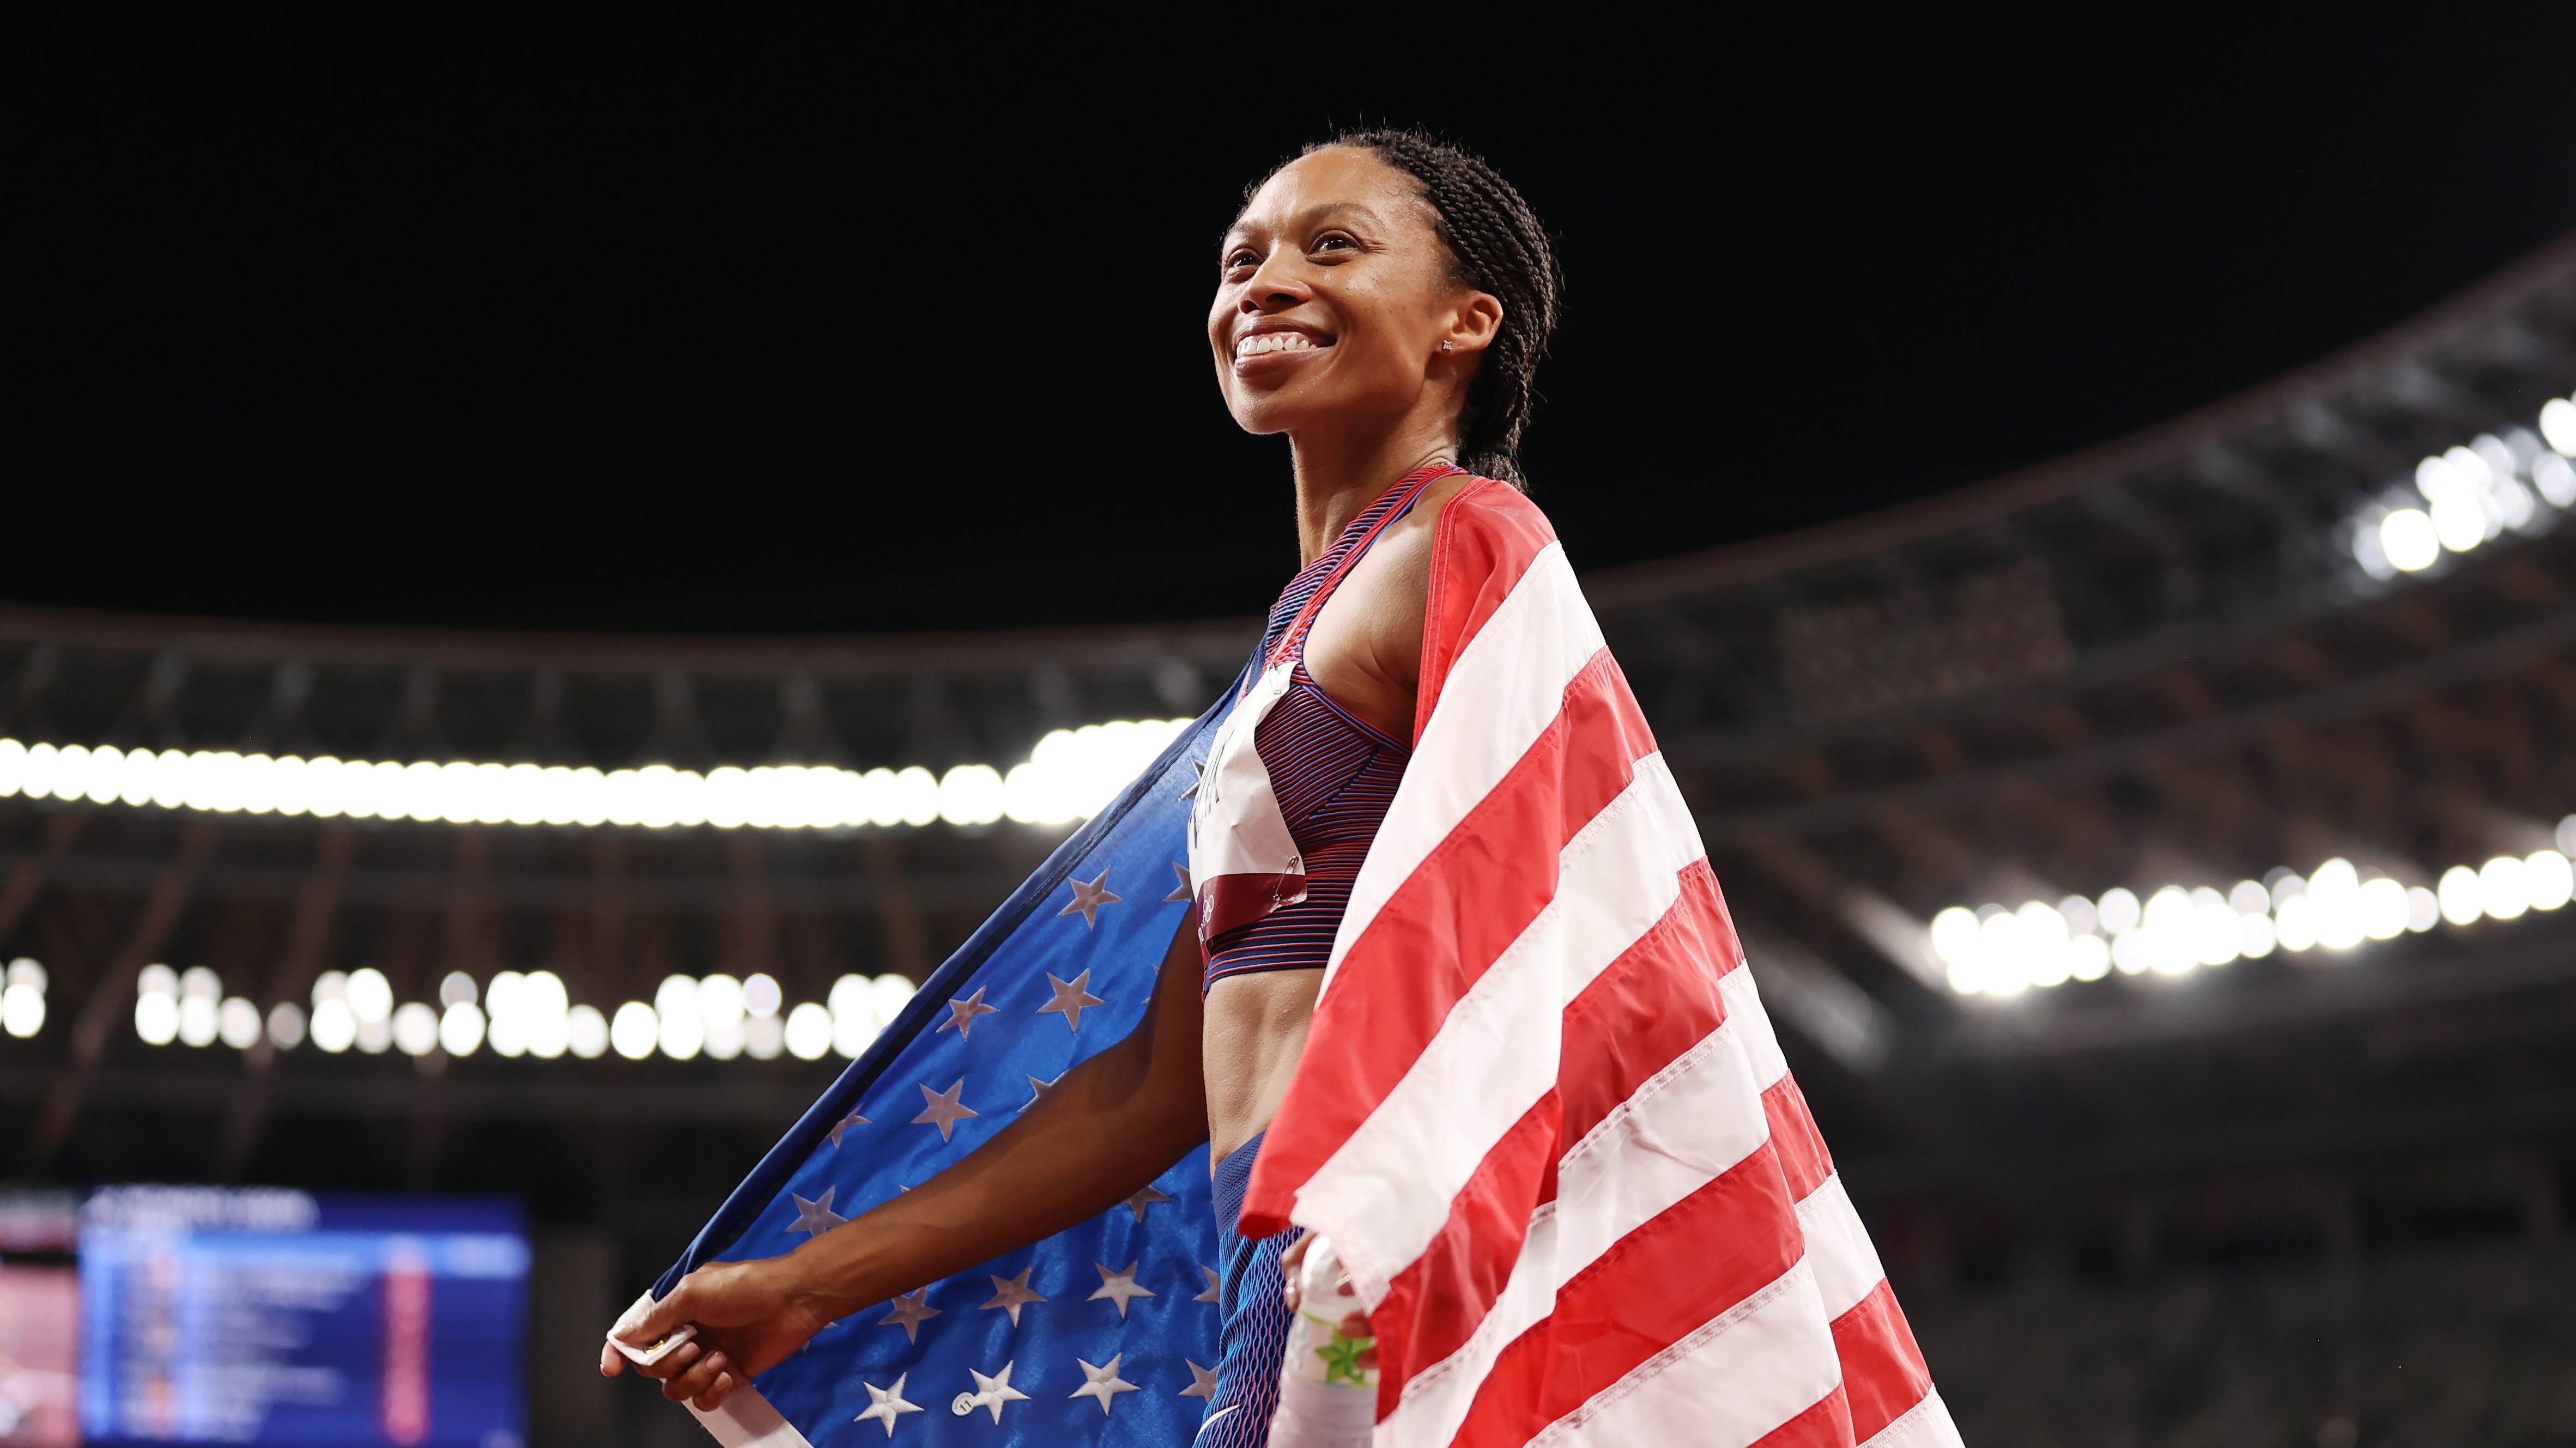 Allyson Felix of Team USA celebrates after winning the bronze medal in the women's 400-meter final at the Tokyo Olympic Games on Friday.